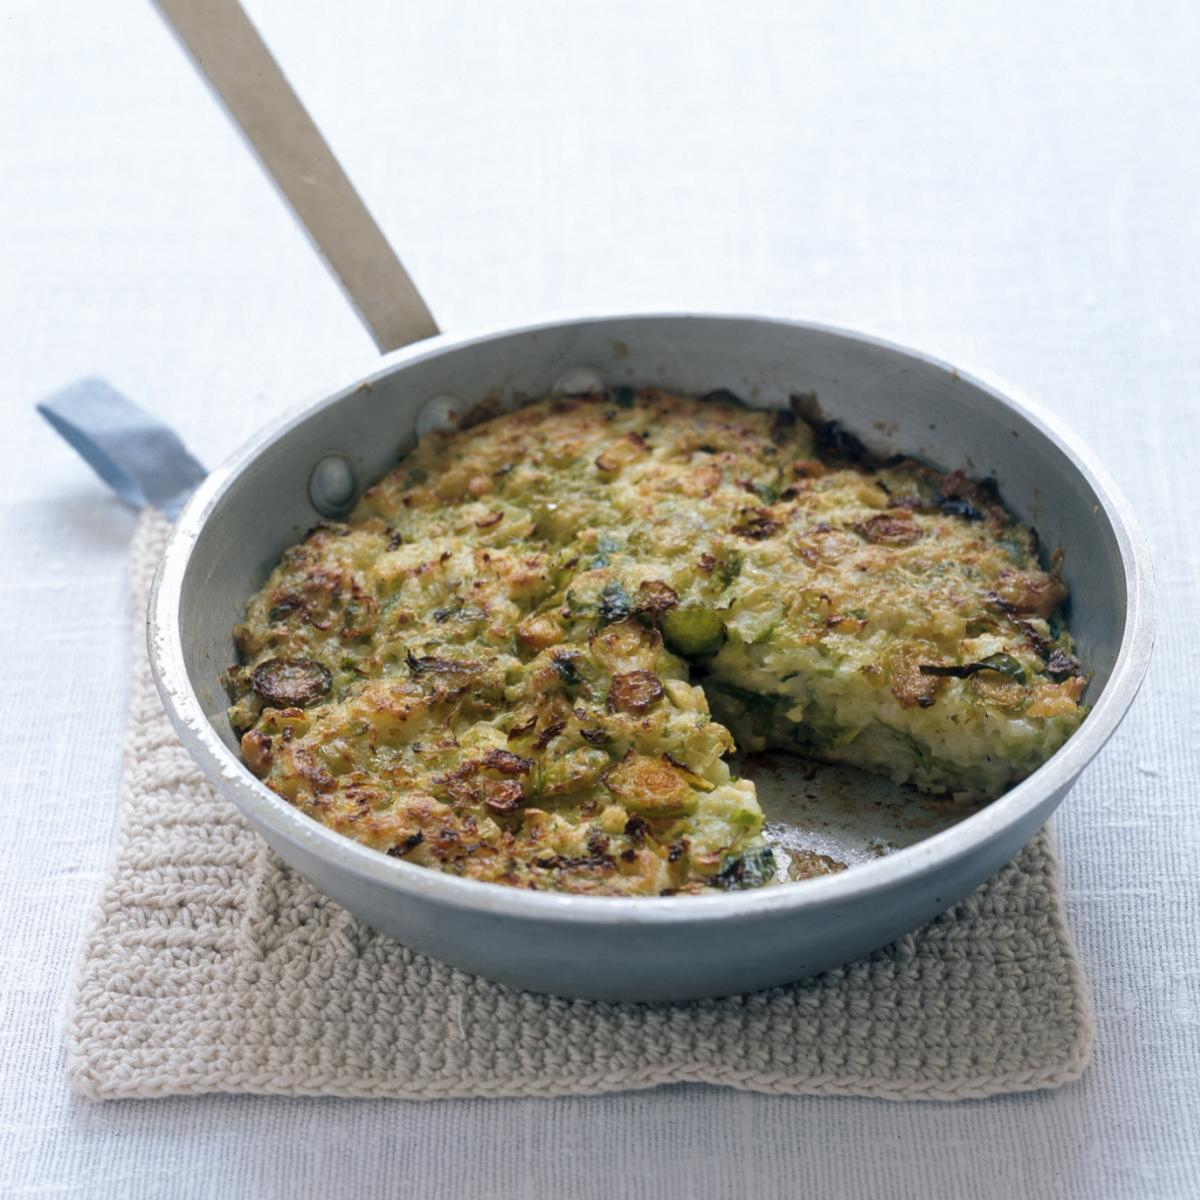 A picture of Delia's Brussels Bubble-and-Squeak recipe